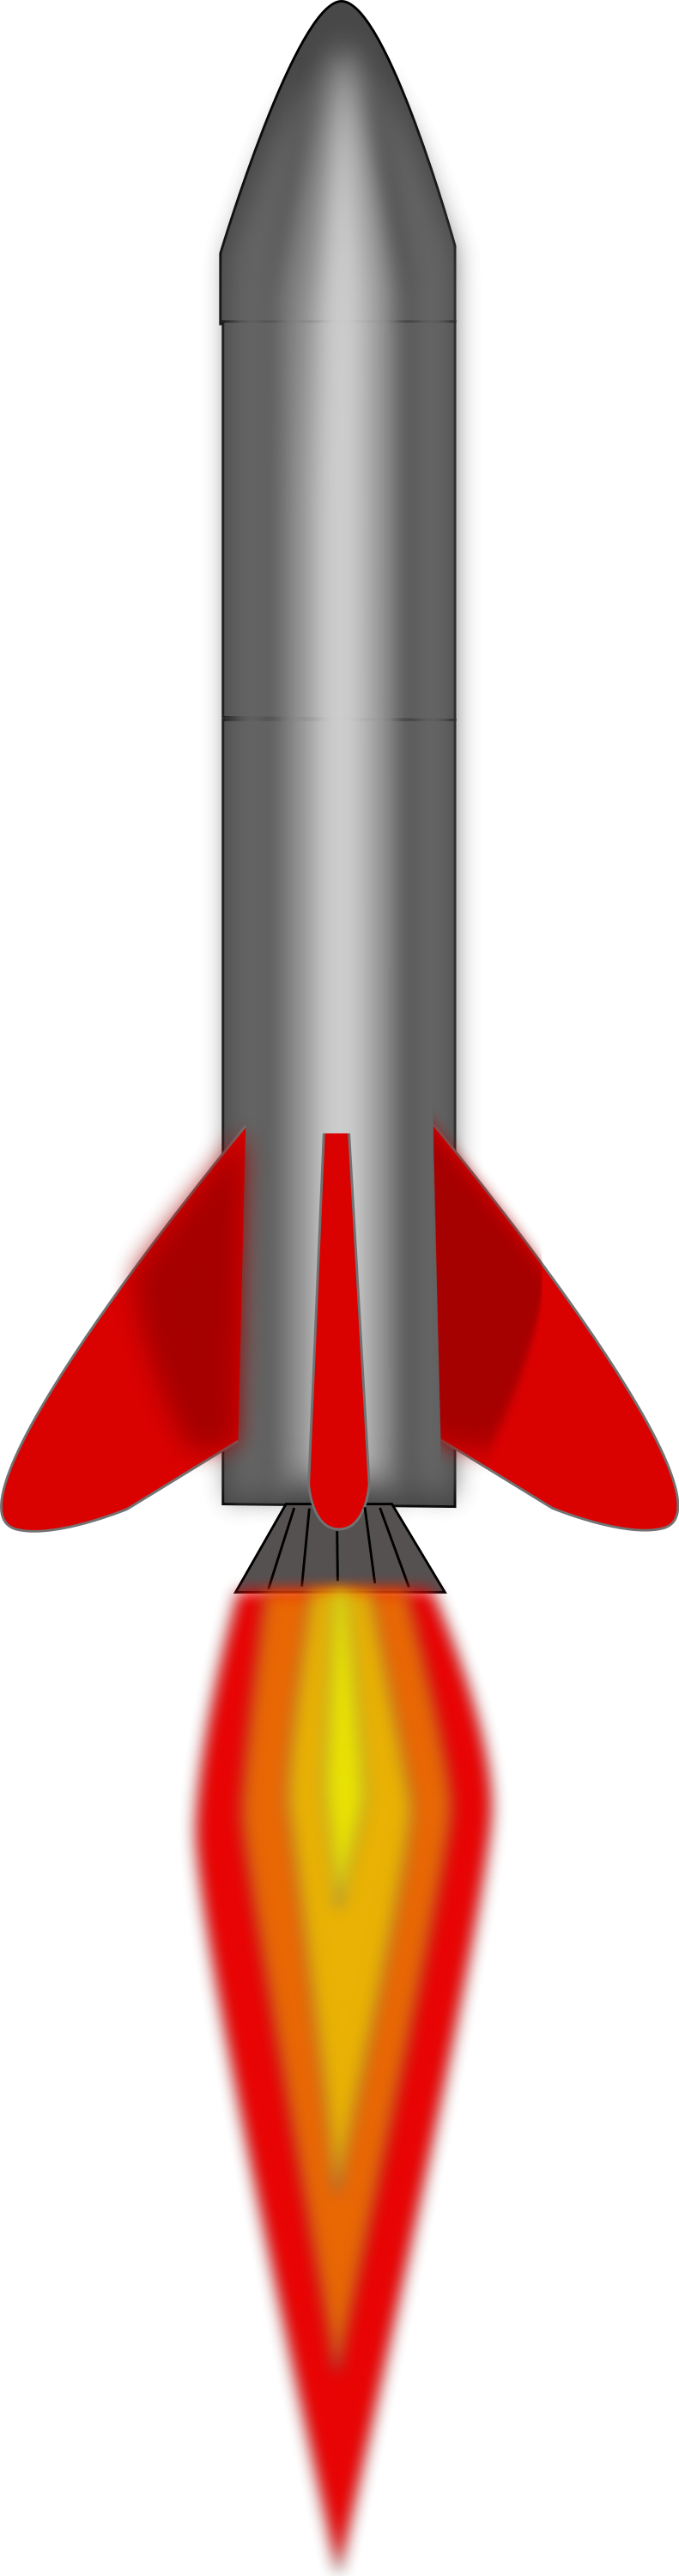 Free stock photo illustration. Clipart rocket clear background